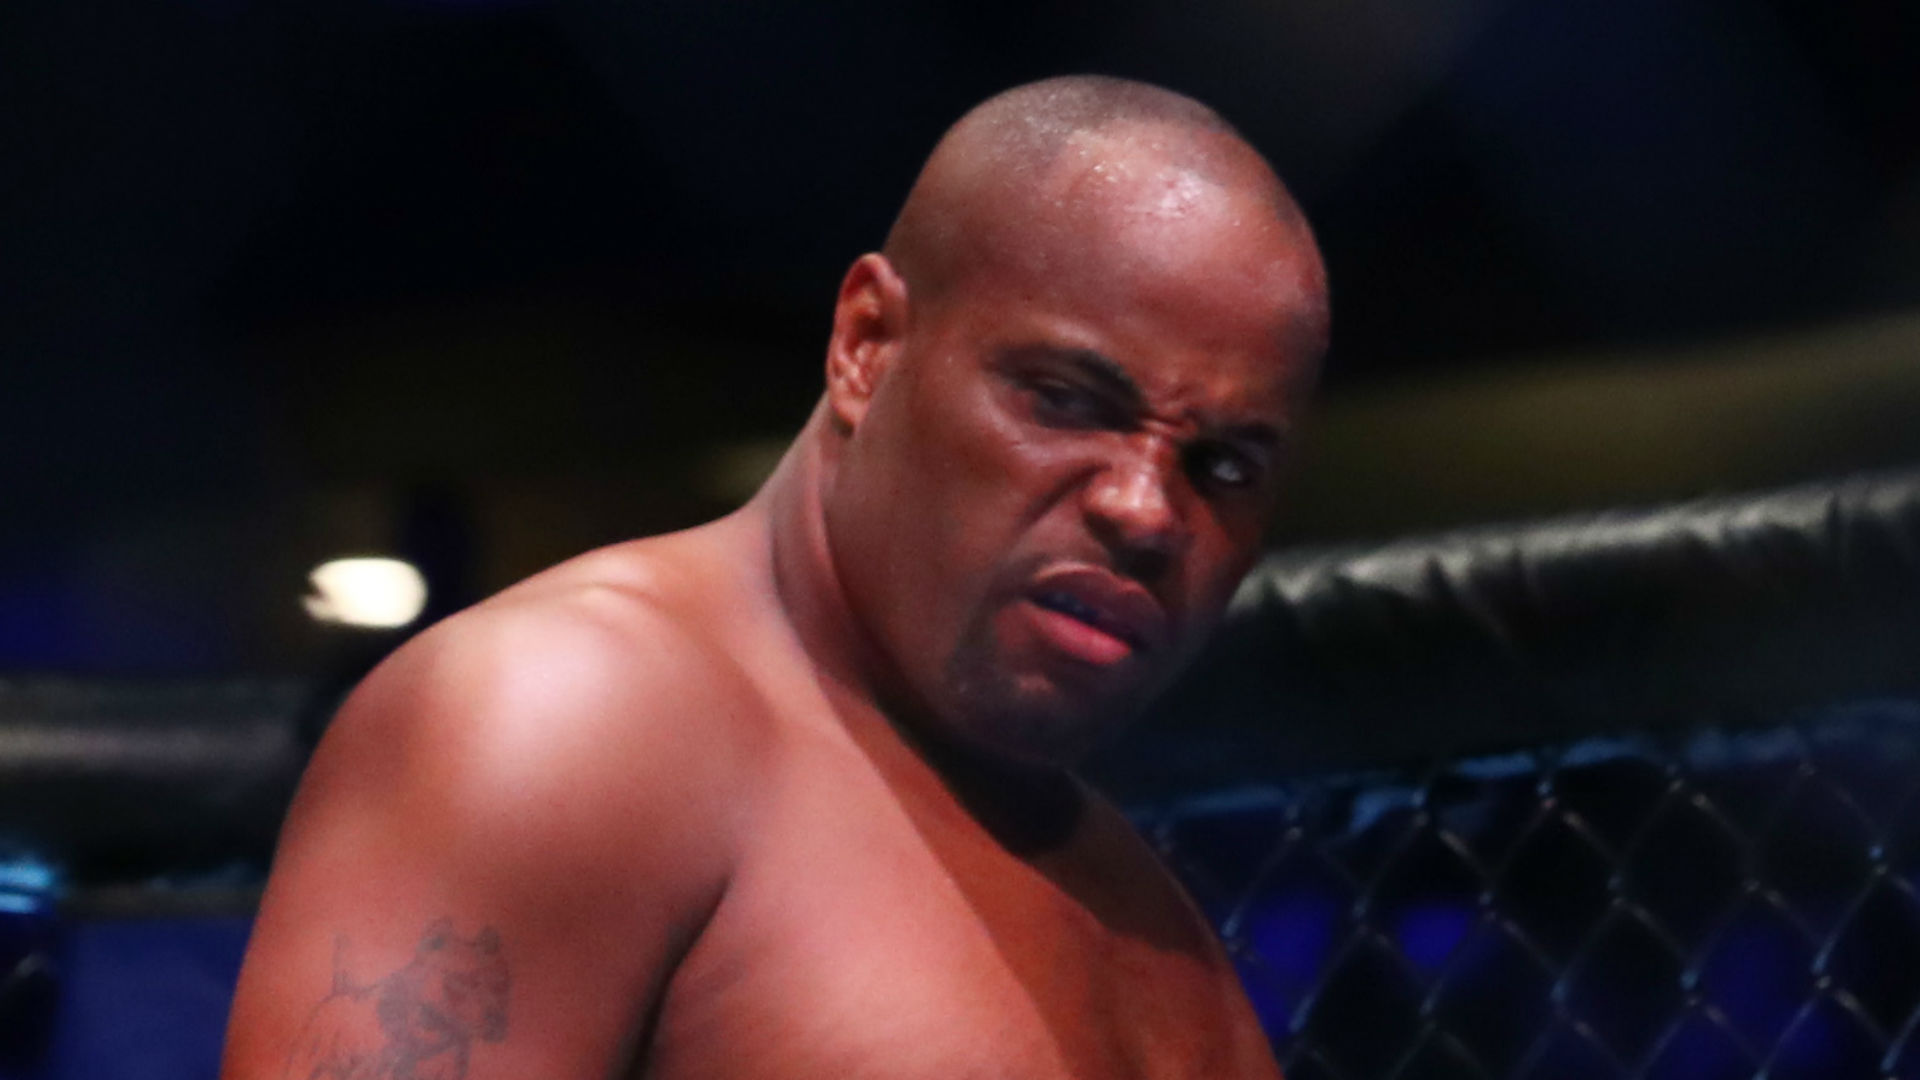 Cormier: Beating Miocic puts me in same bracket as Jordan and Manning